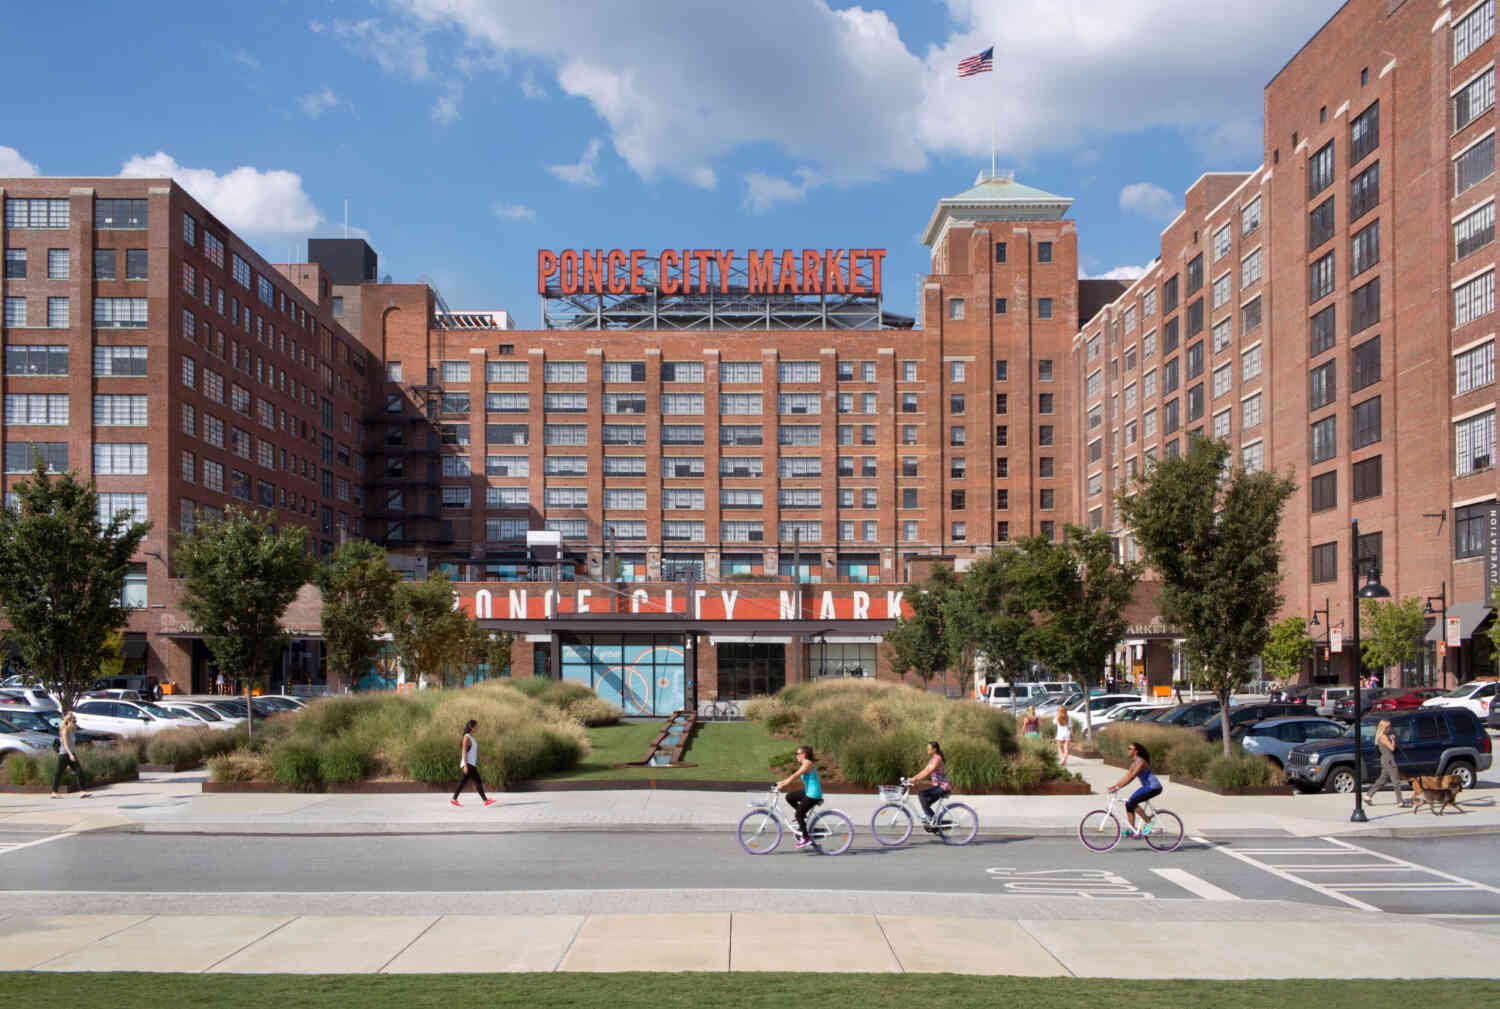 Cyclists pass by Ponce City Market under a blue sky